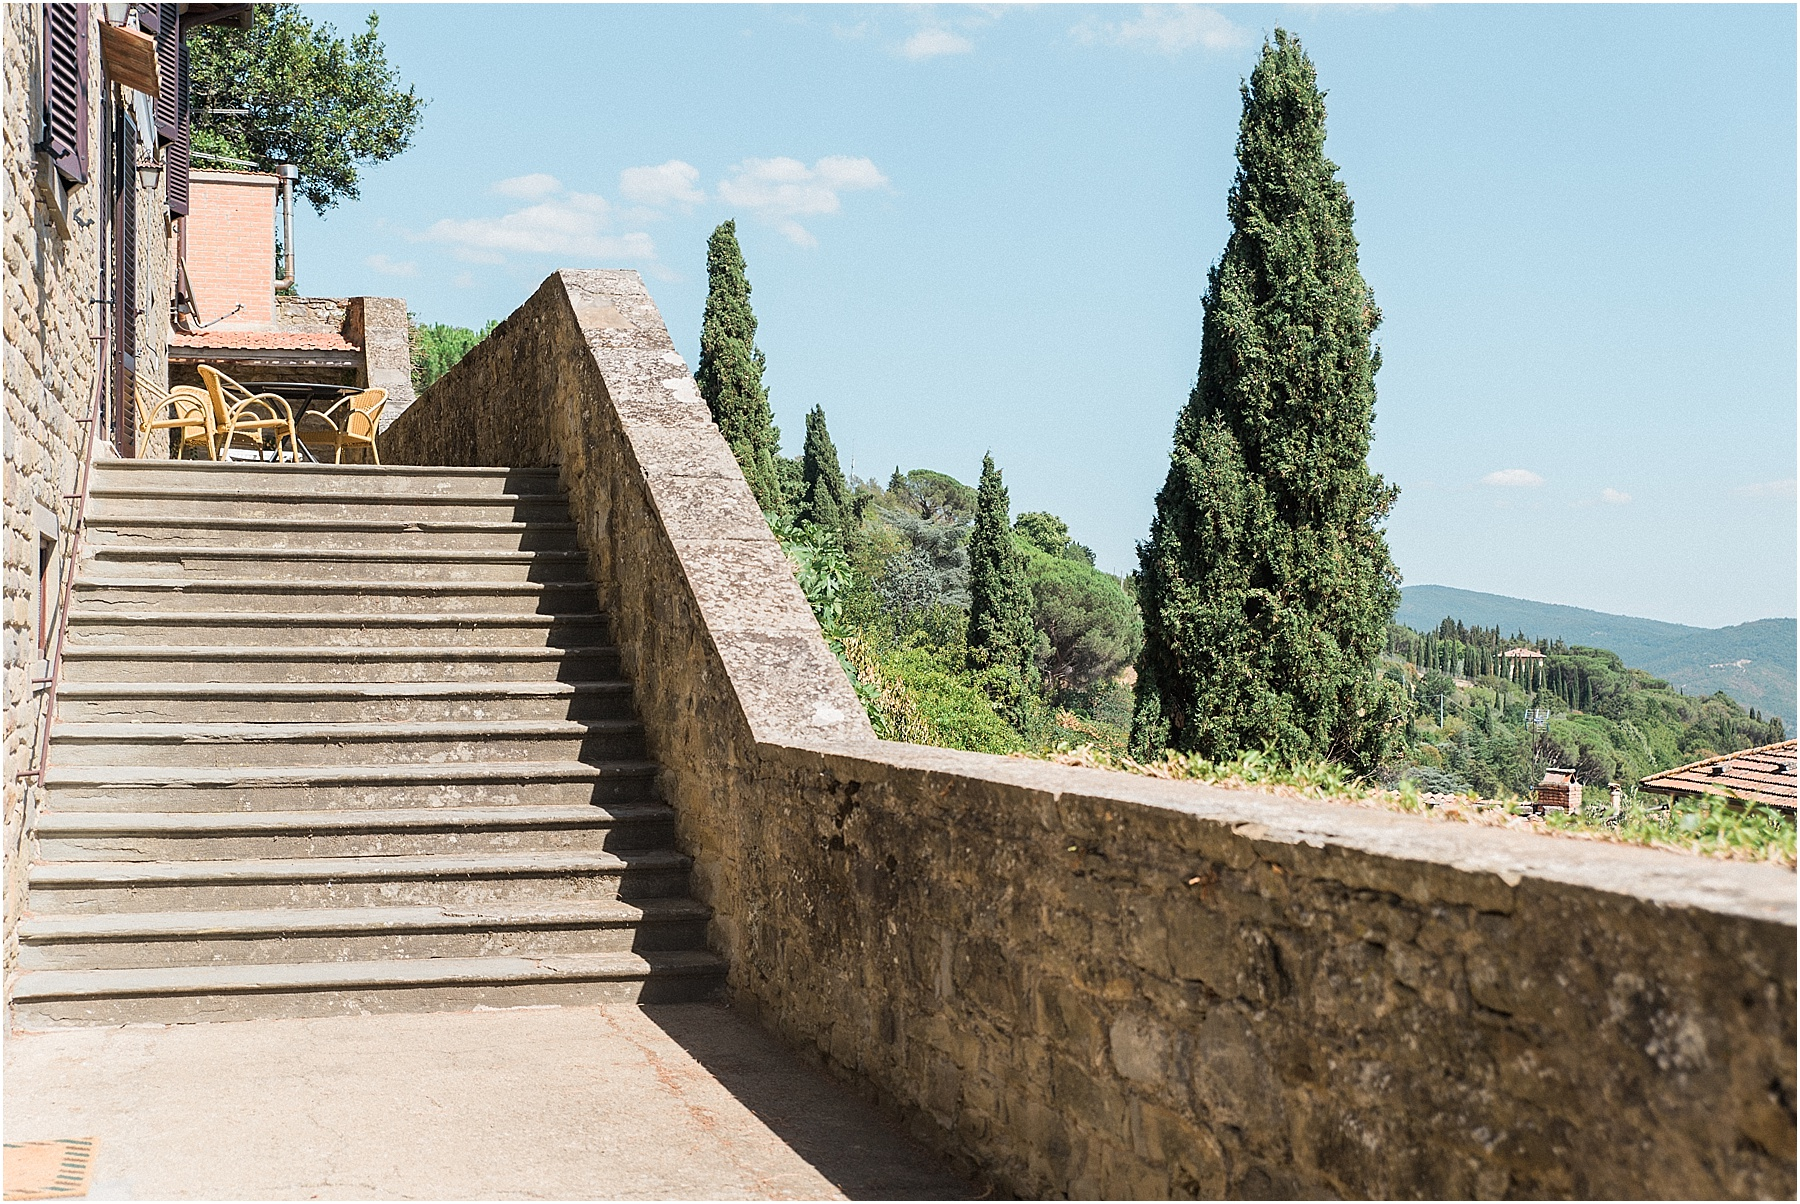 villa in cortona tuscany italy stone medieval stairs leading to wedding villa cypress trees